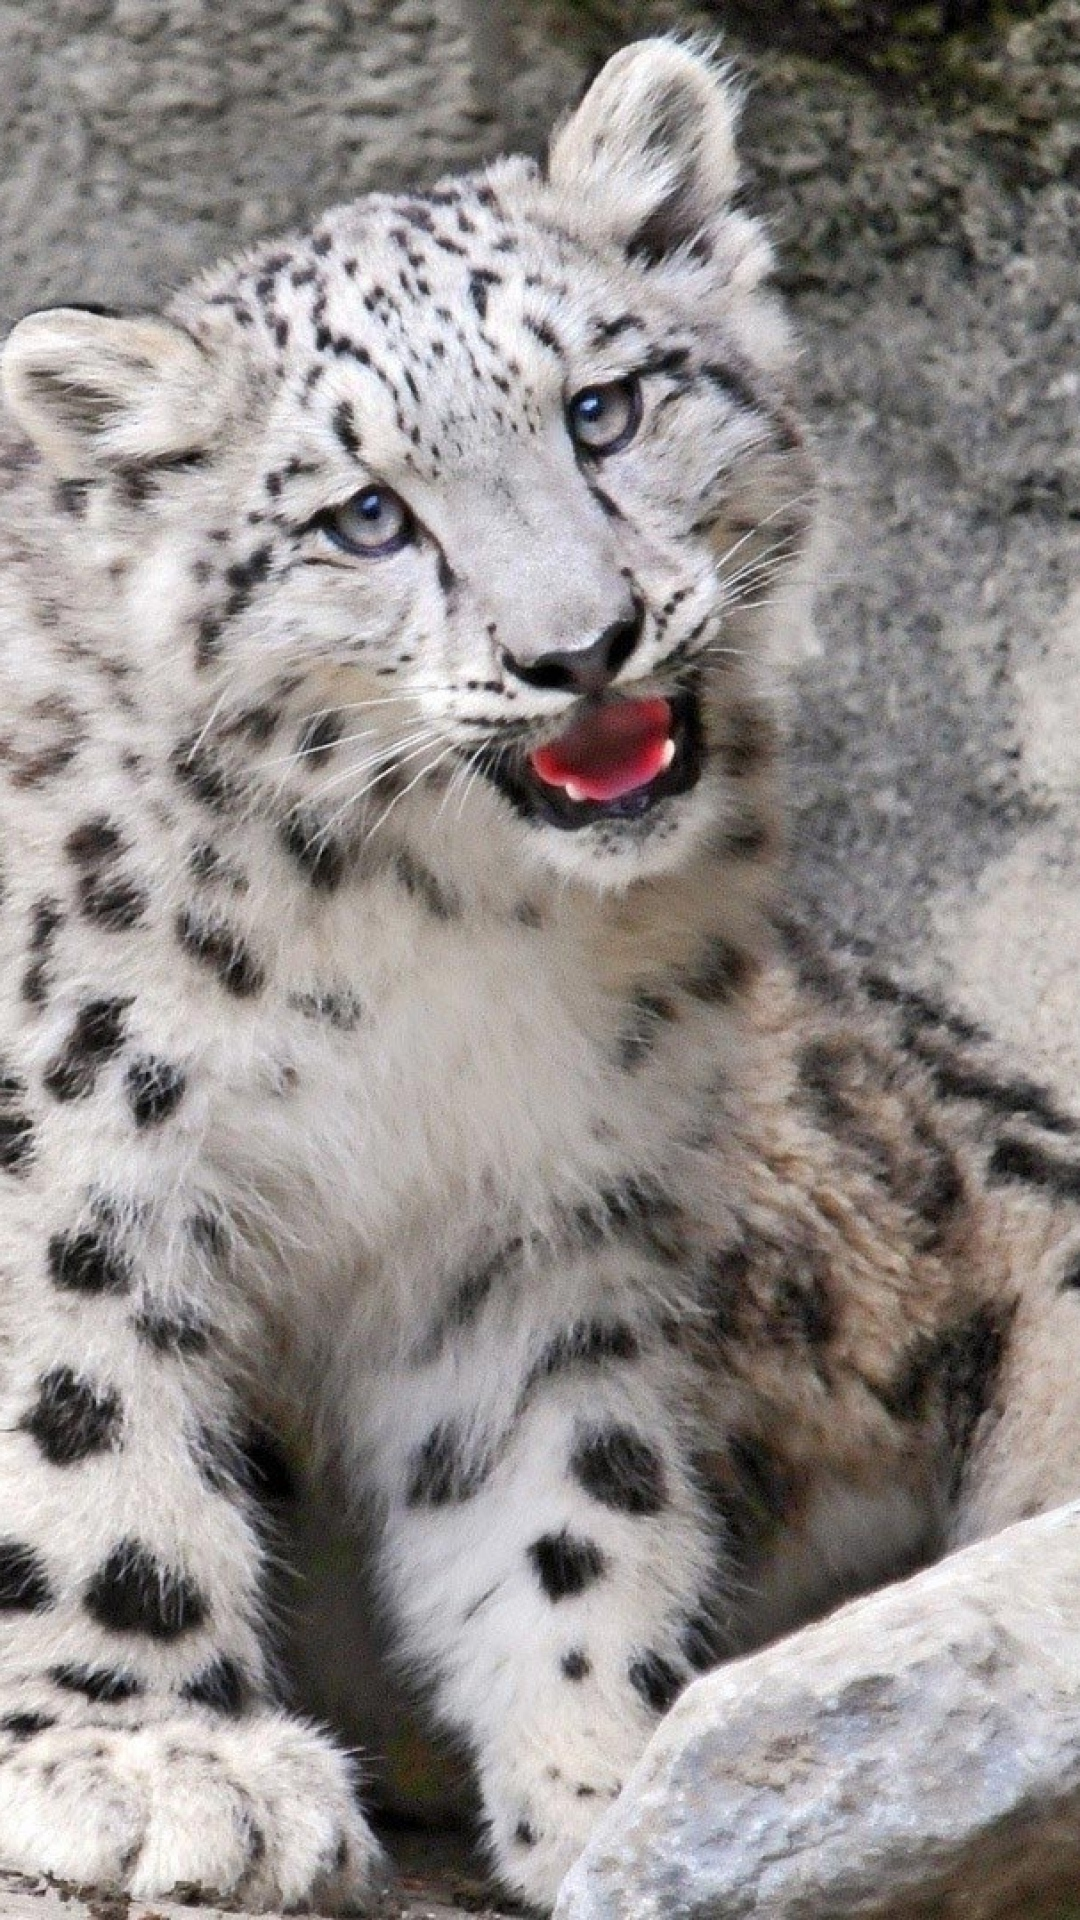 Snow leopard baby   4K wallpapers, free and easy to download